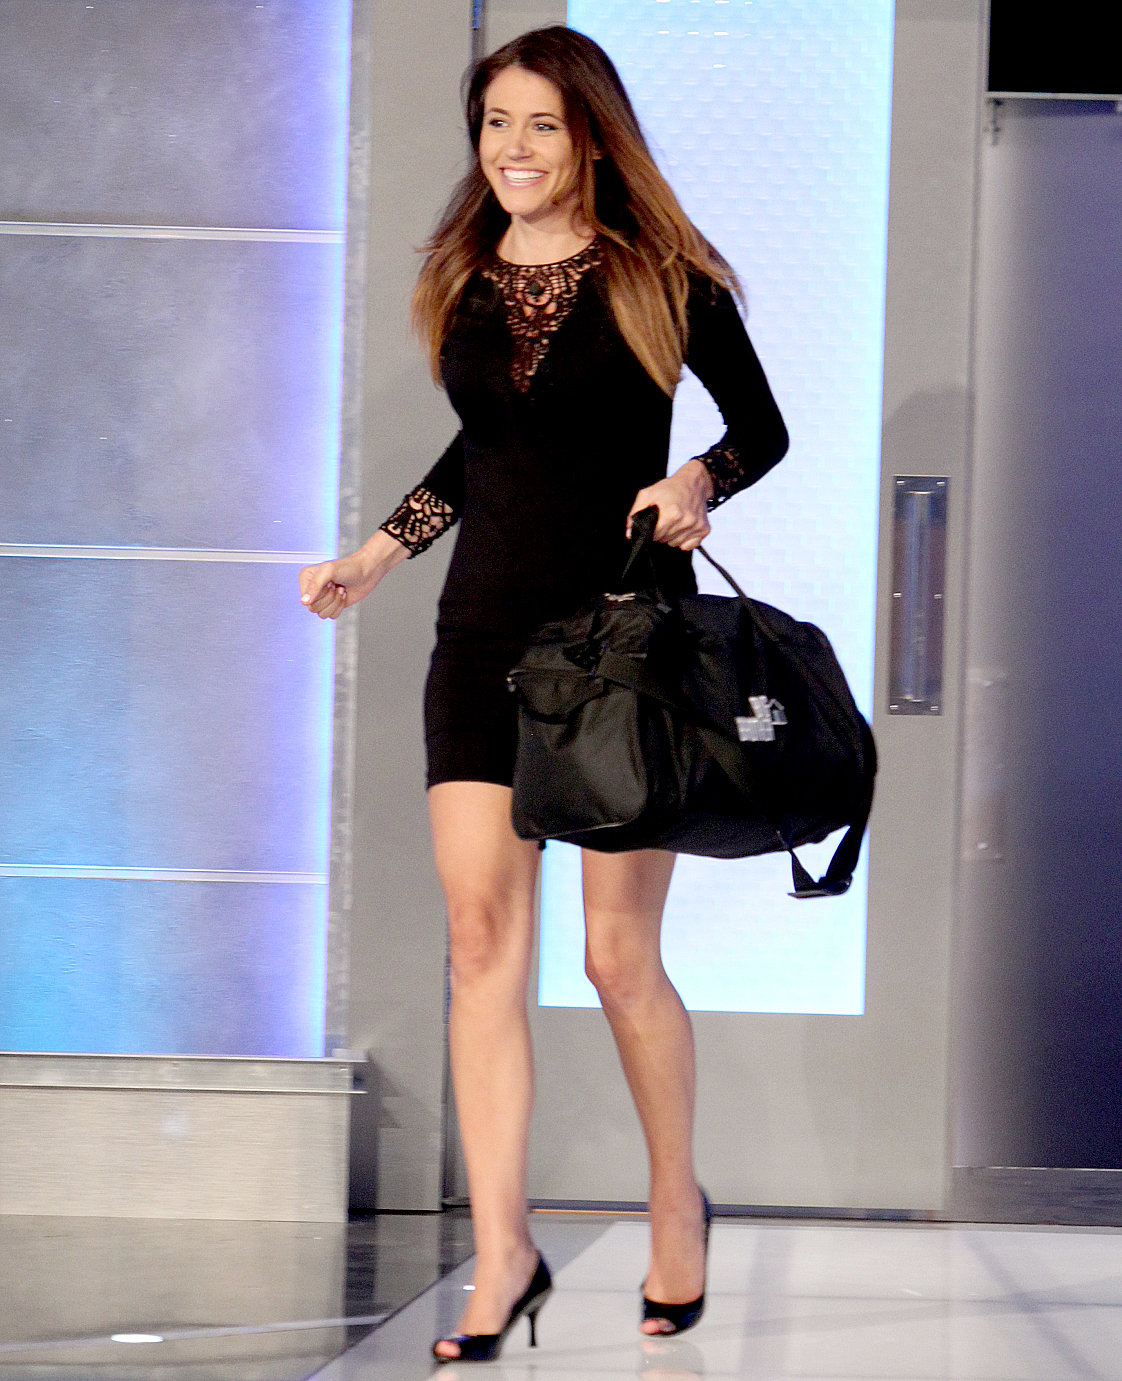 Tiffany Rousso becomes the latest evictee on Big Brother July 21.